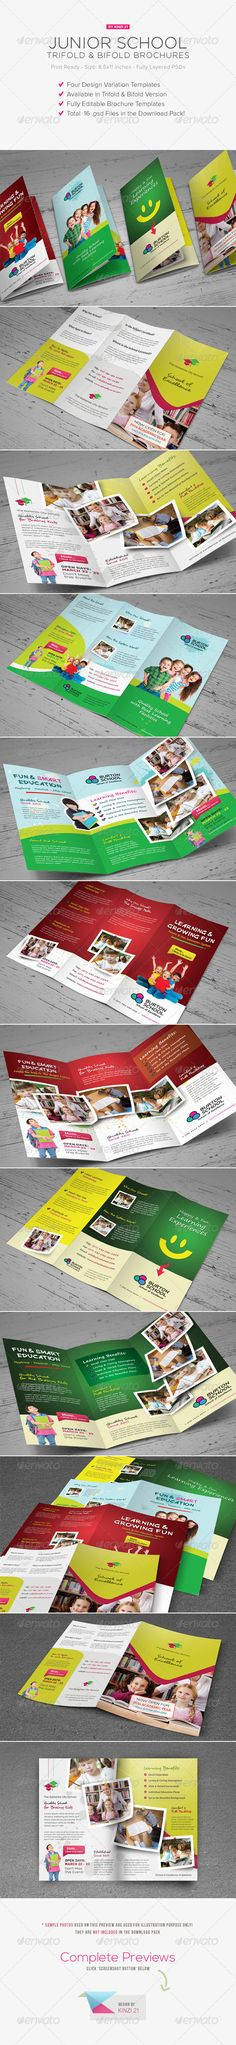 Junior School Trifold & Bifold Brochures #GraphicRiver Junior School Trifold & Bifold Brochures A complete set of brochures templates ideal for promoting your junior or primary school's next admission year or promoting your school in general and benefits of taking children to your school to parents, now you don't have to worry creating one with yourself. You can now purchase this great school brochure template pack consisting of 16 templates. From these 16 templates you will have trifold and…